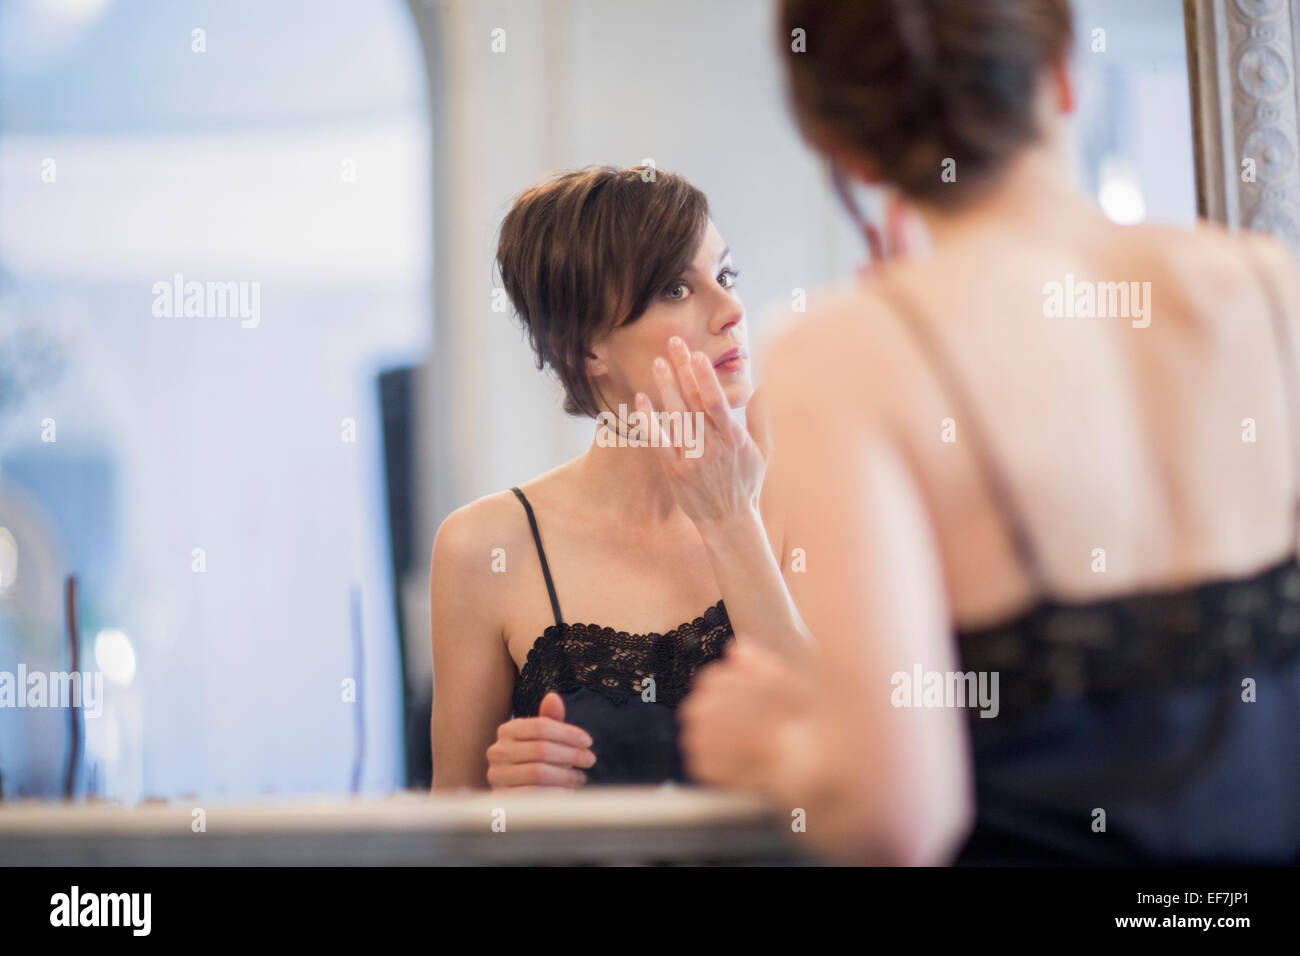 Woman applying anti-aging cream on her face - Stock Image